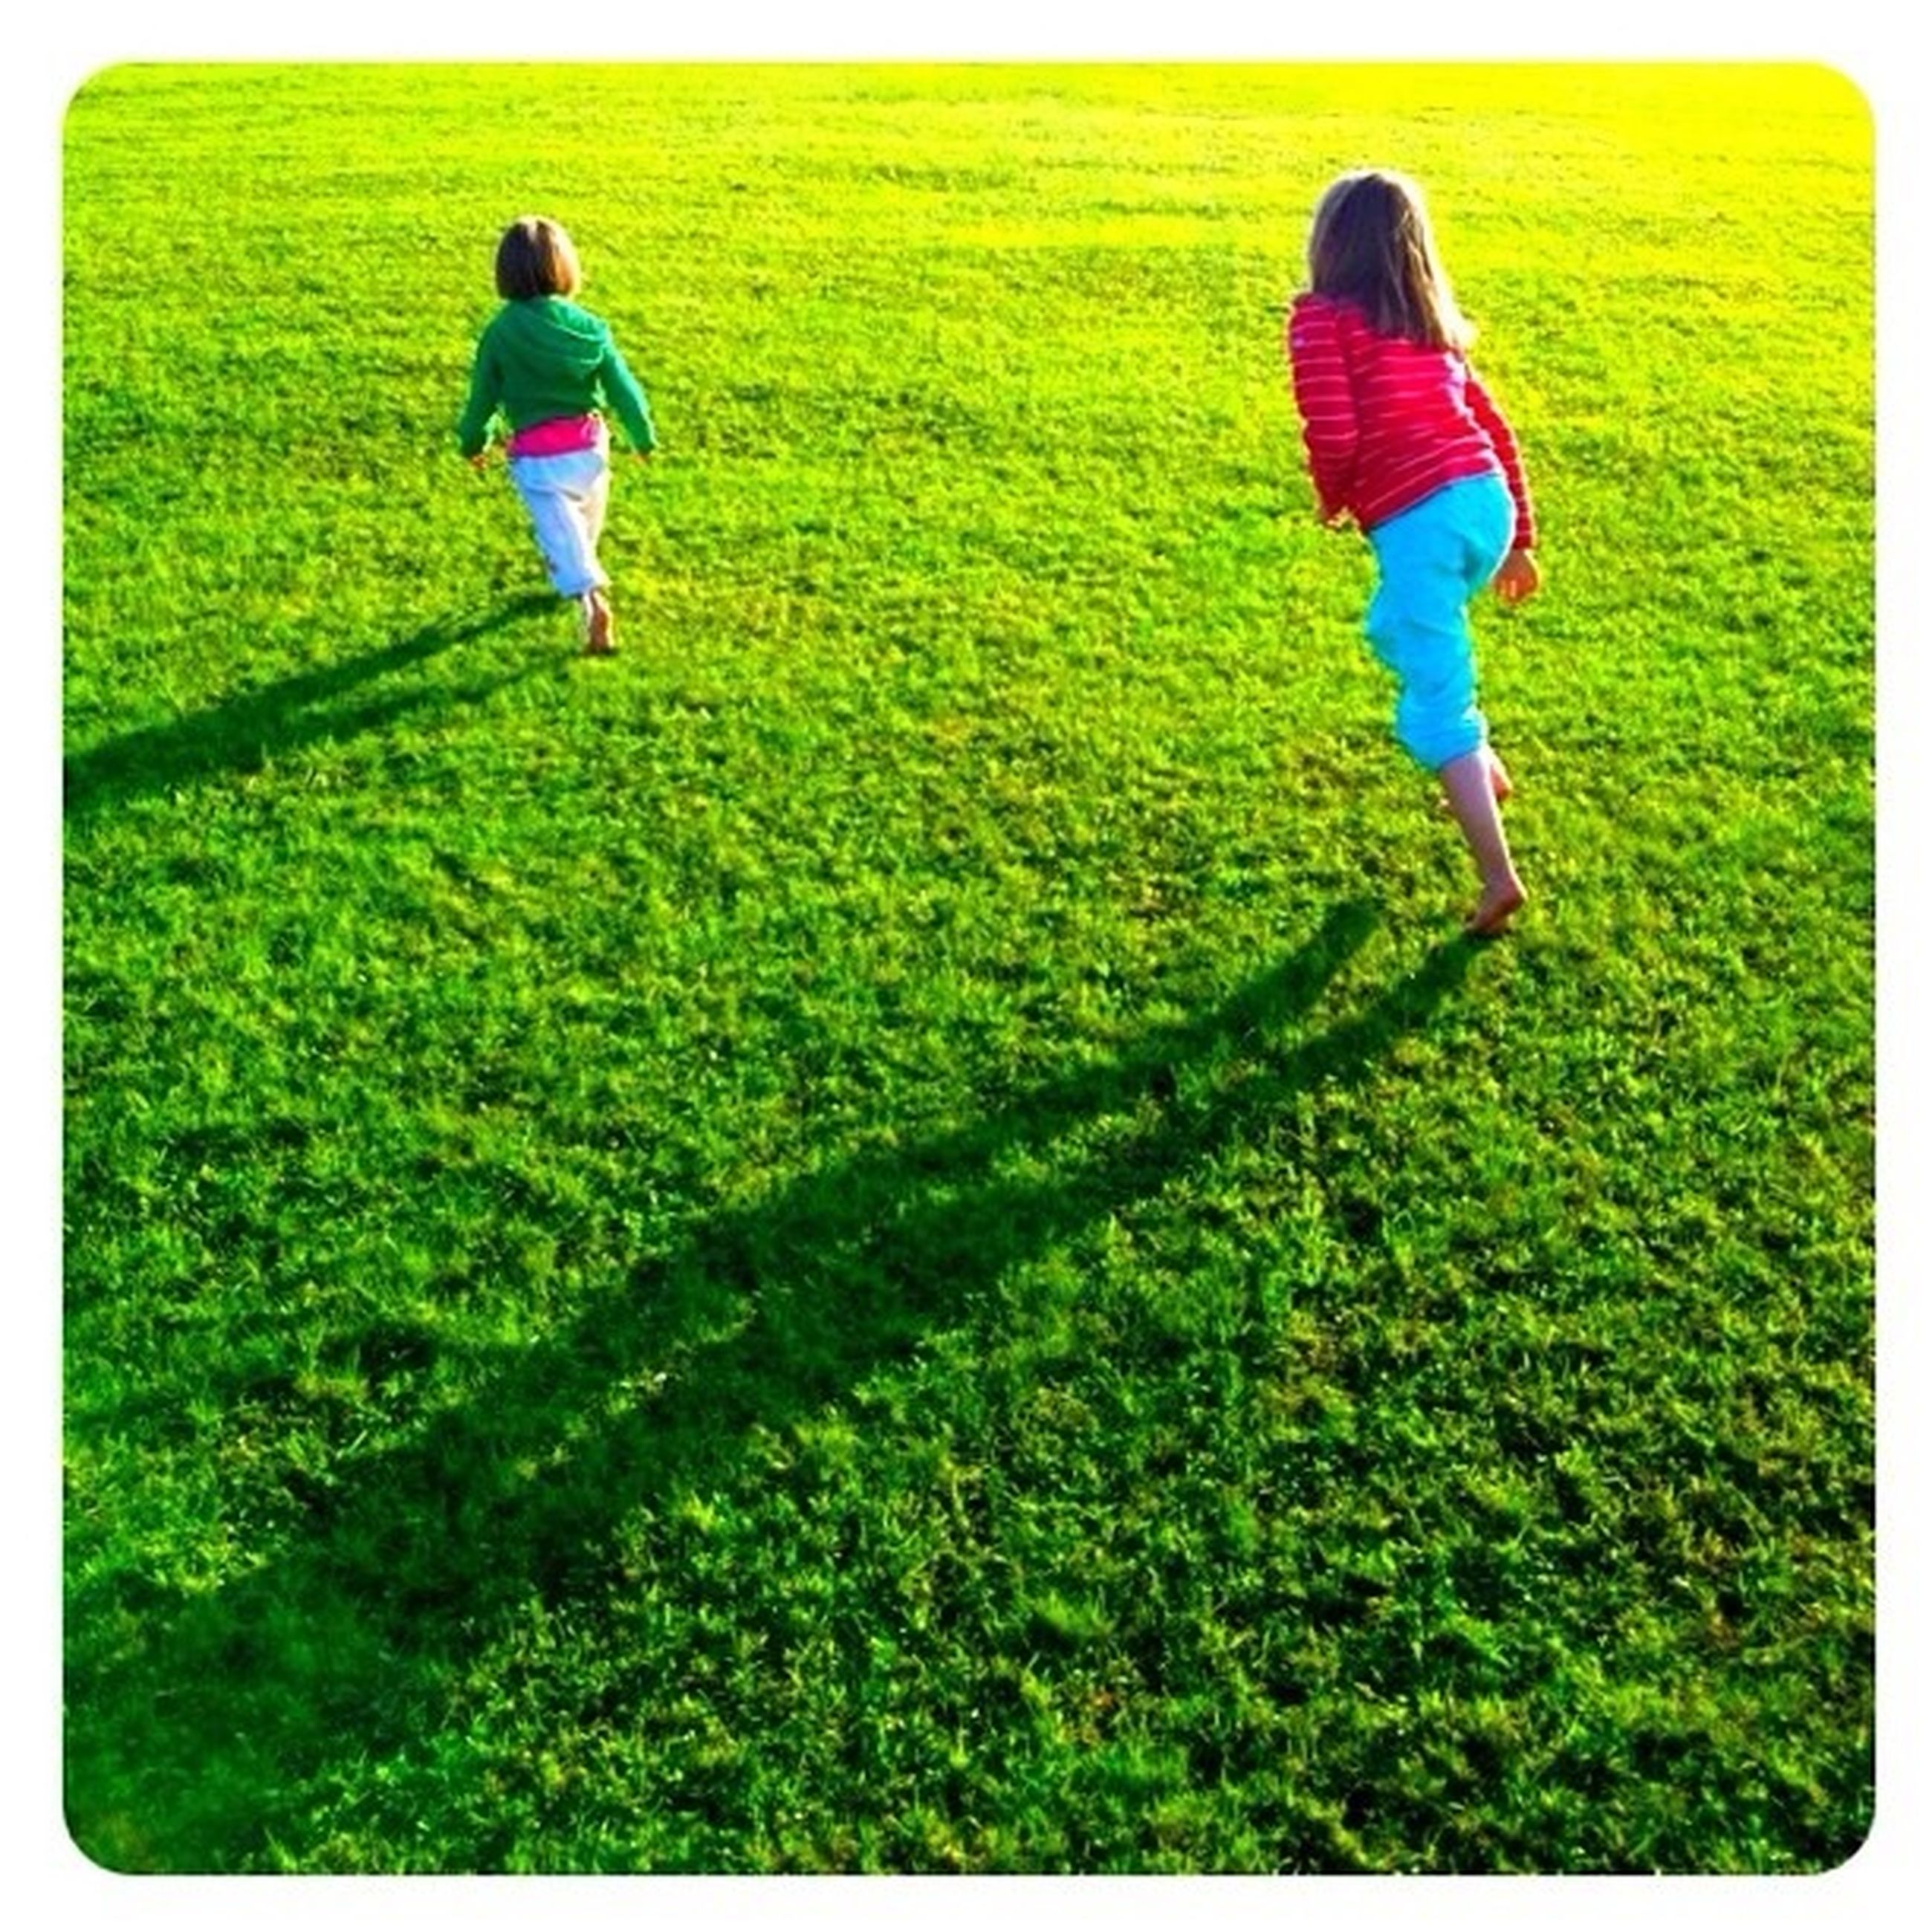 transfer print, grass, lifestyles, leisure activity, full length, childhood, casual clothing, field, auto post production filter, boys, elementary age, girls, green color, grassy, walking, rear view, landscape, men